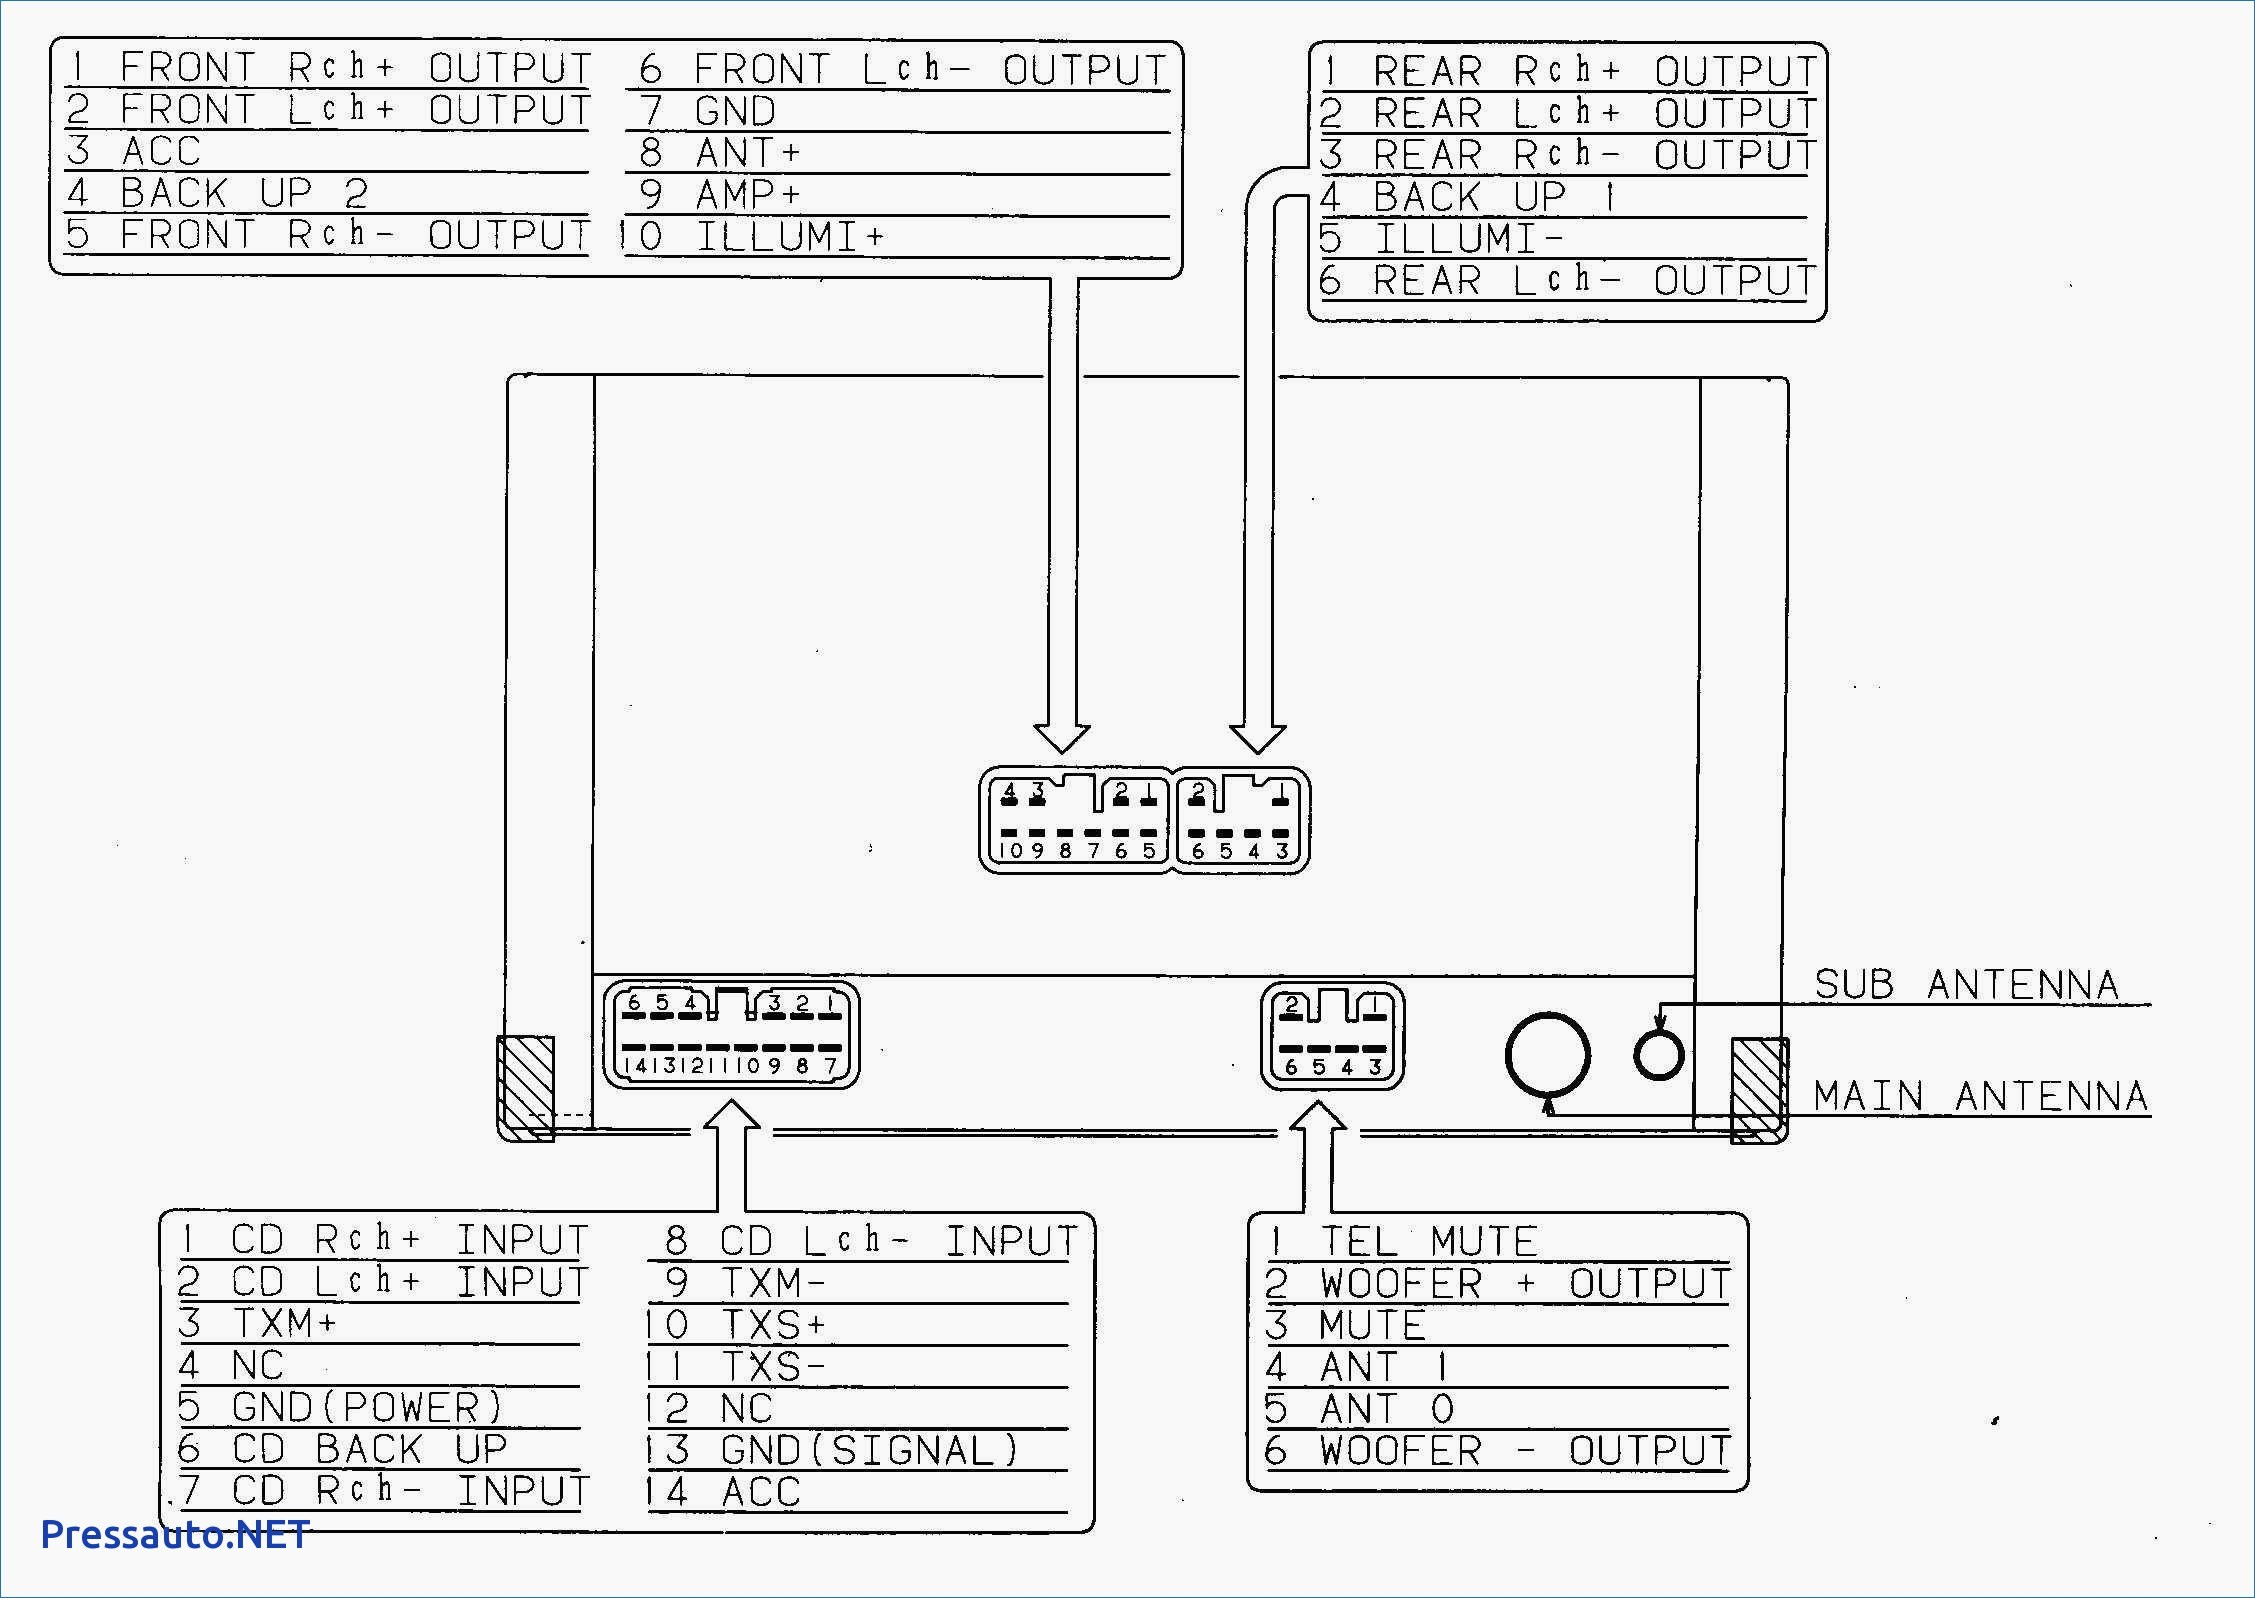 pioneer avh p4100dvd wiring diagram all wiring diagram Pioneer AVH P4000DVD Wiring